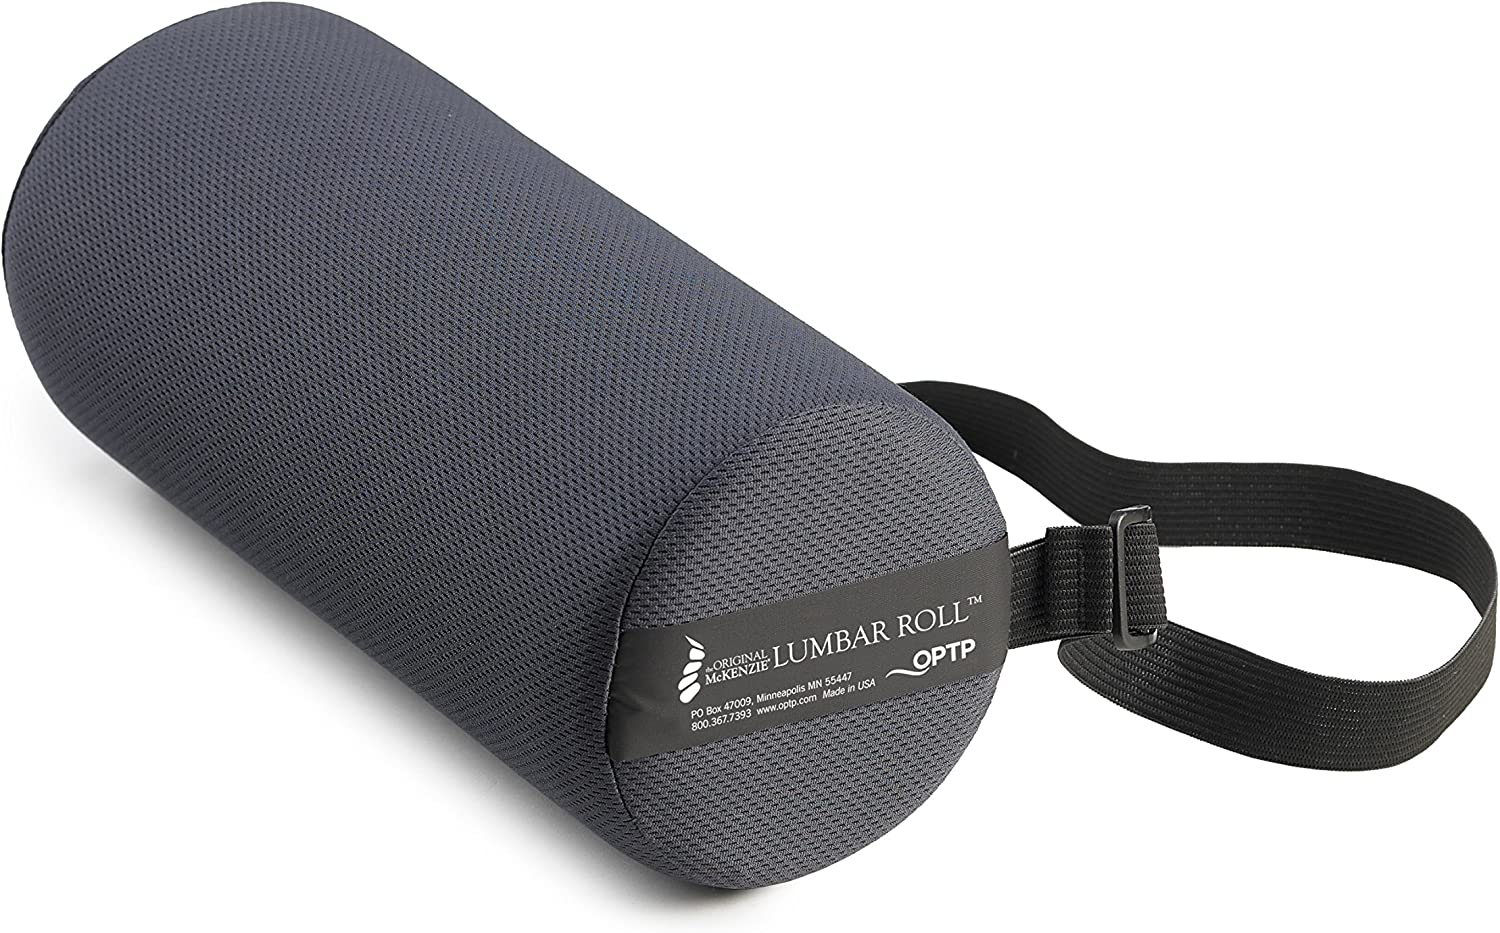 The Original McKenzie Lumbar Roll by OPTP - Low Back Support for Office Chairs and Car Seats: Health & Personal Care